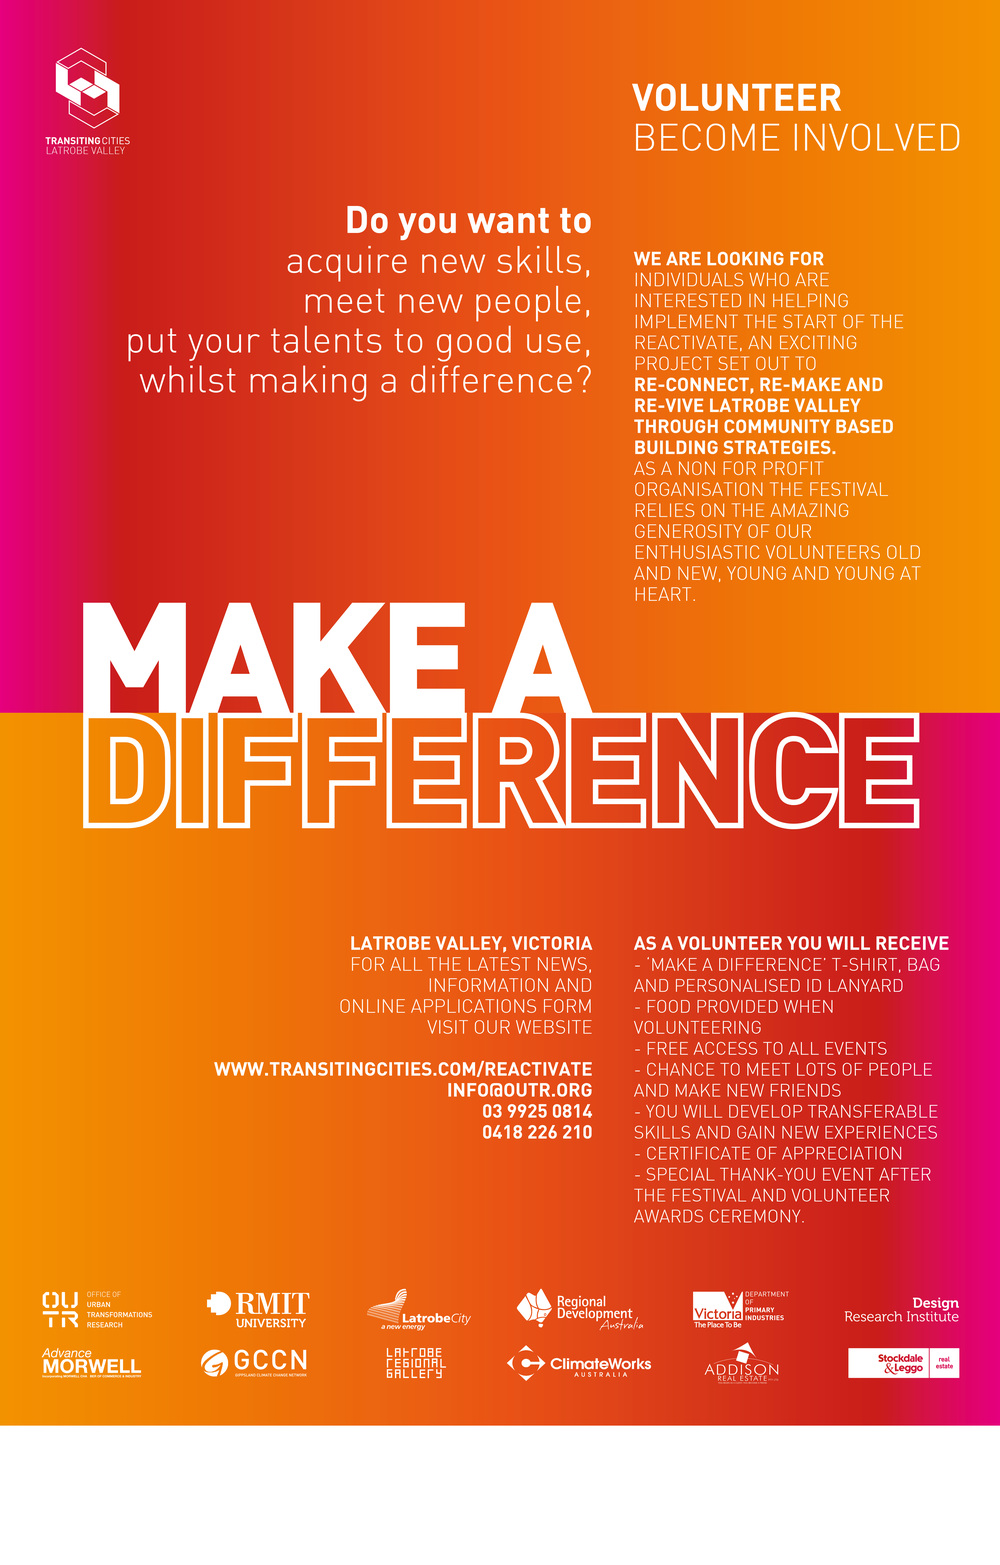 Download the 'Make A Difference' poster